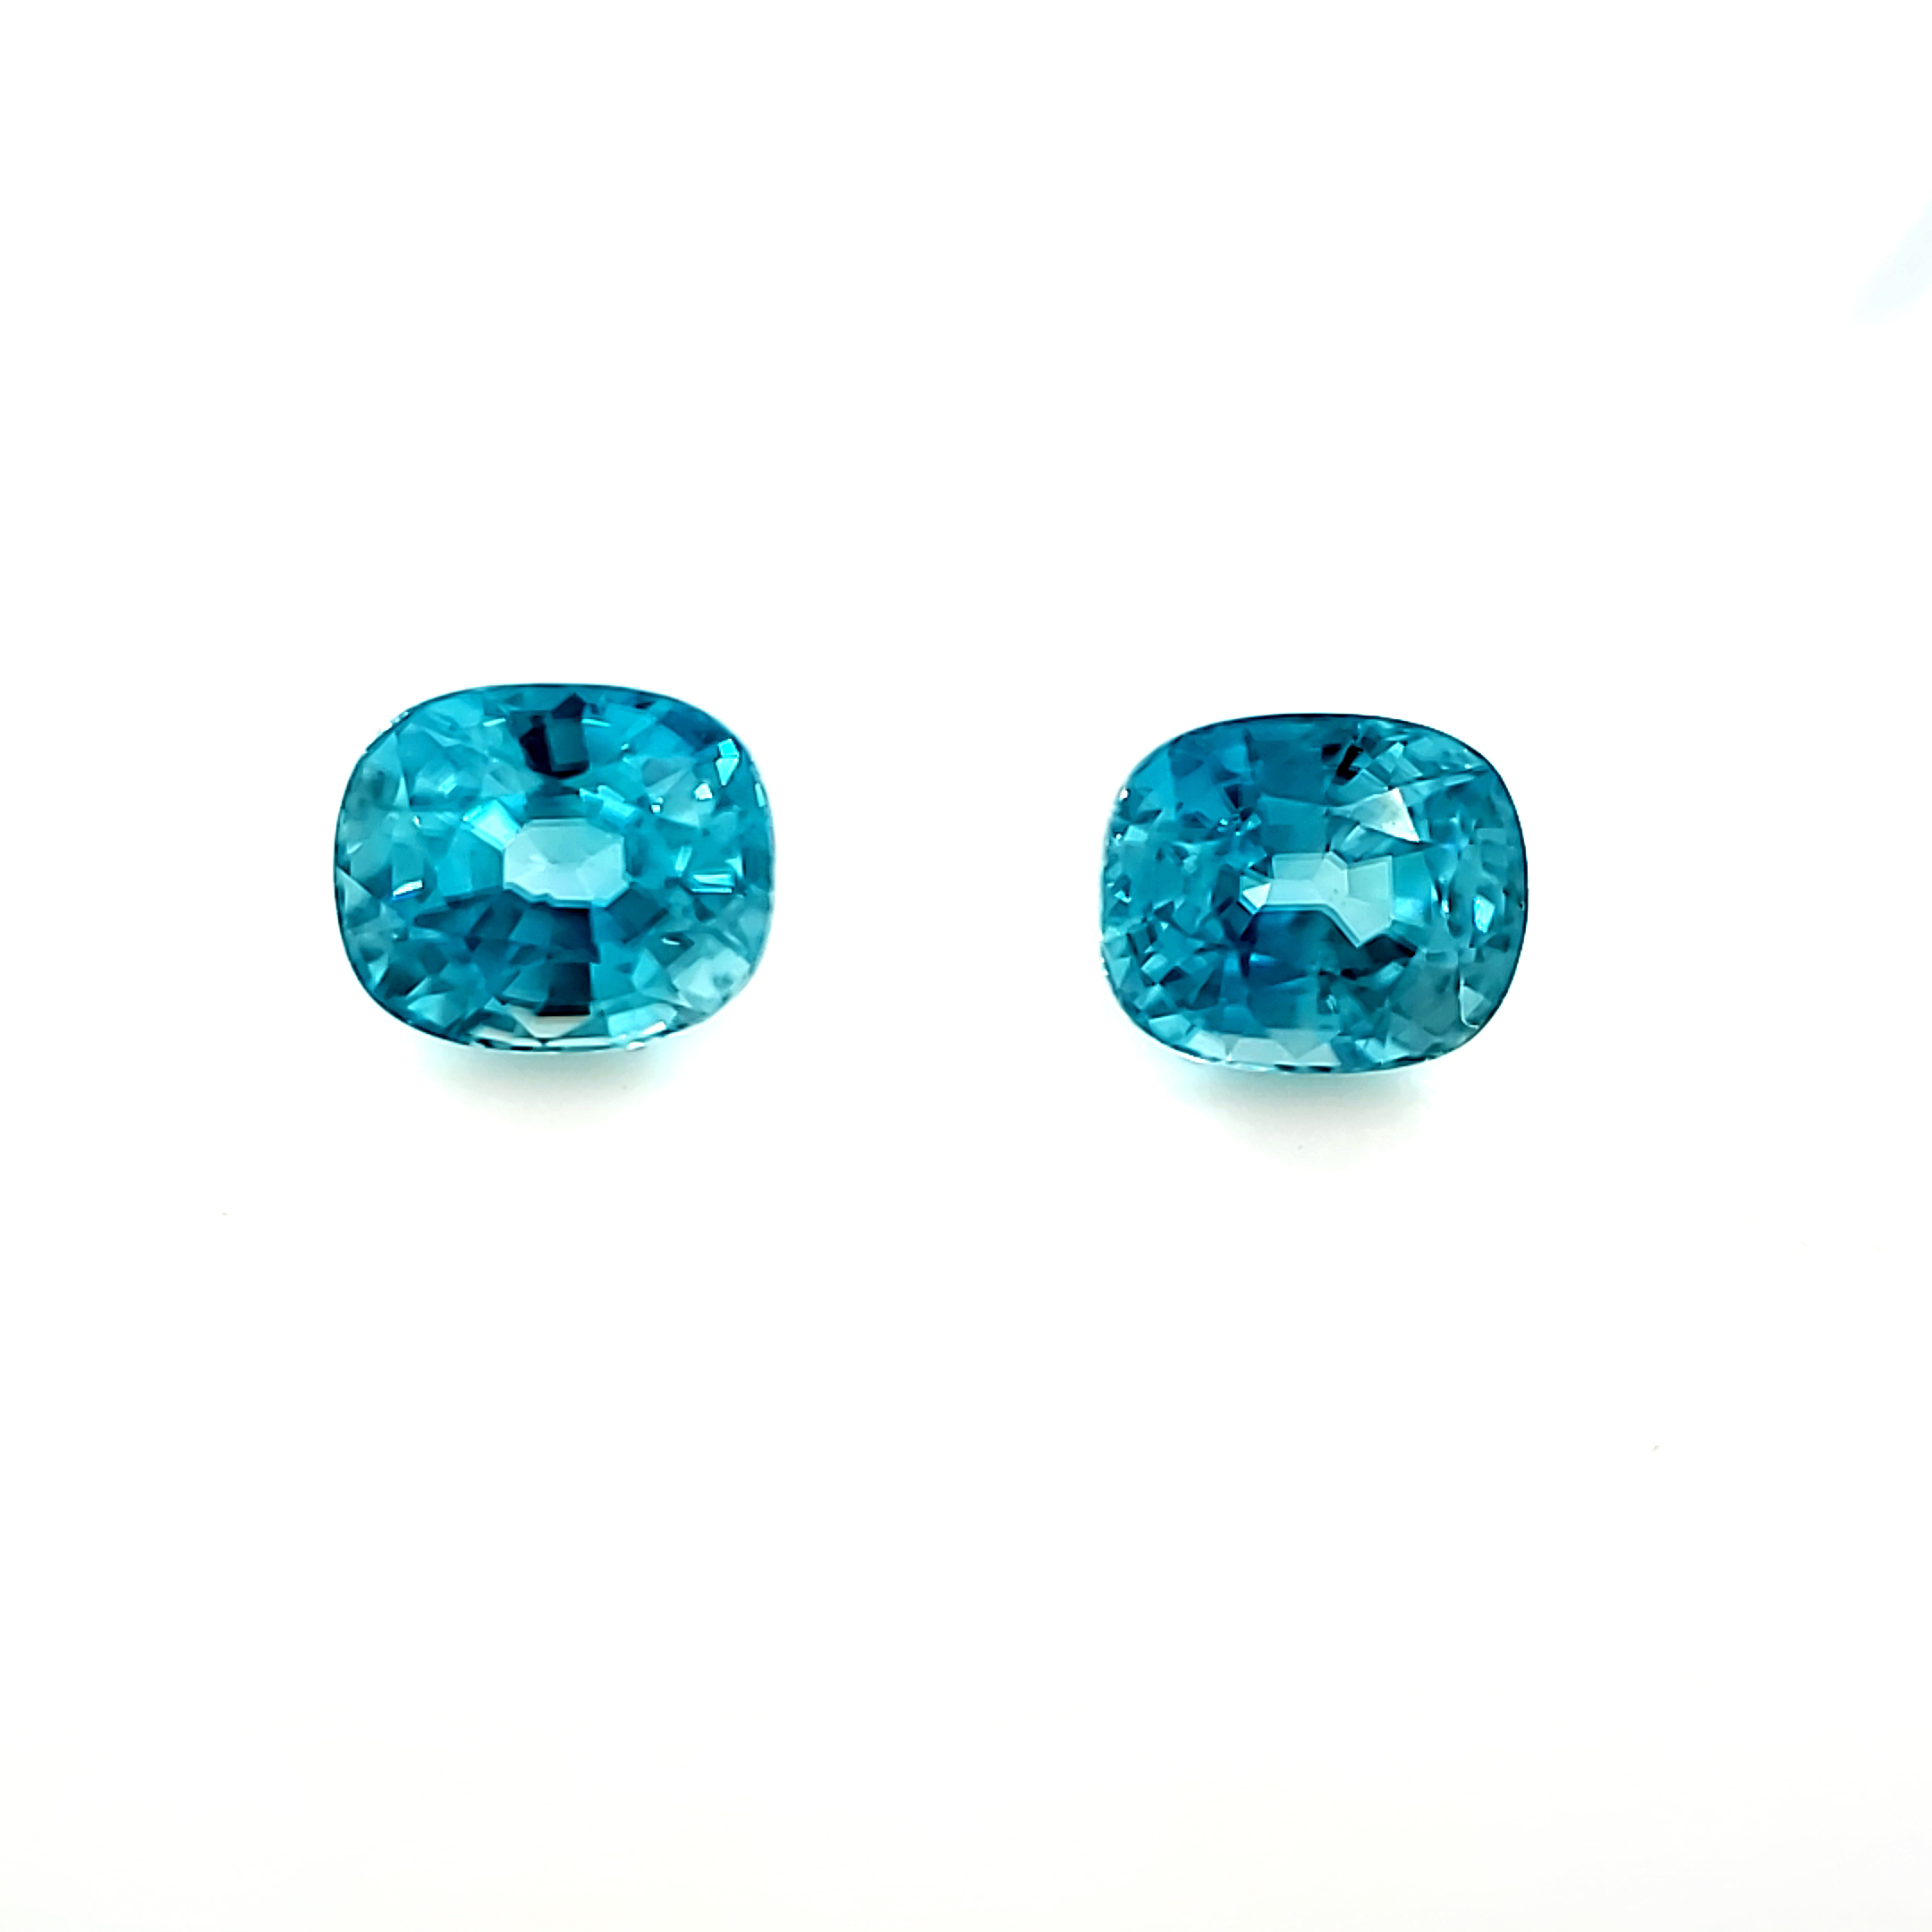 2.9 tcw. Blue Zircon Pair